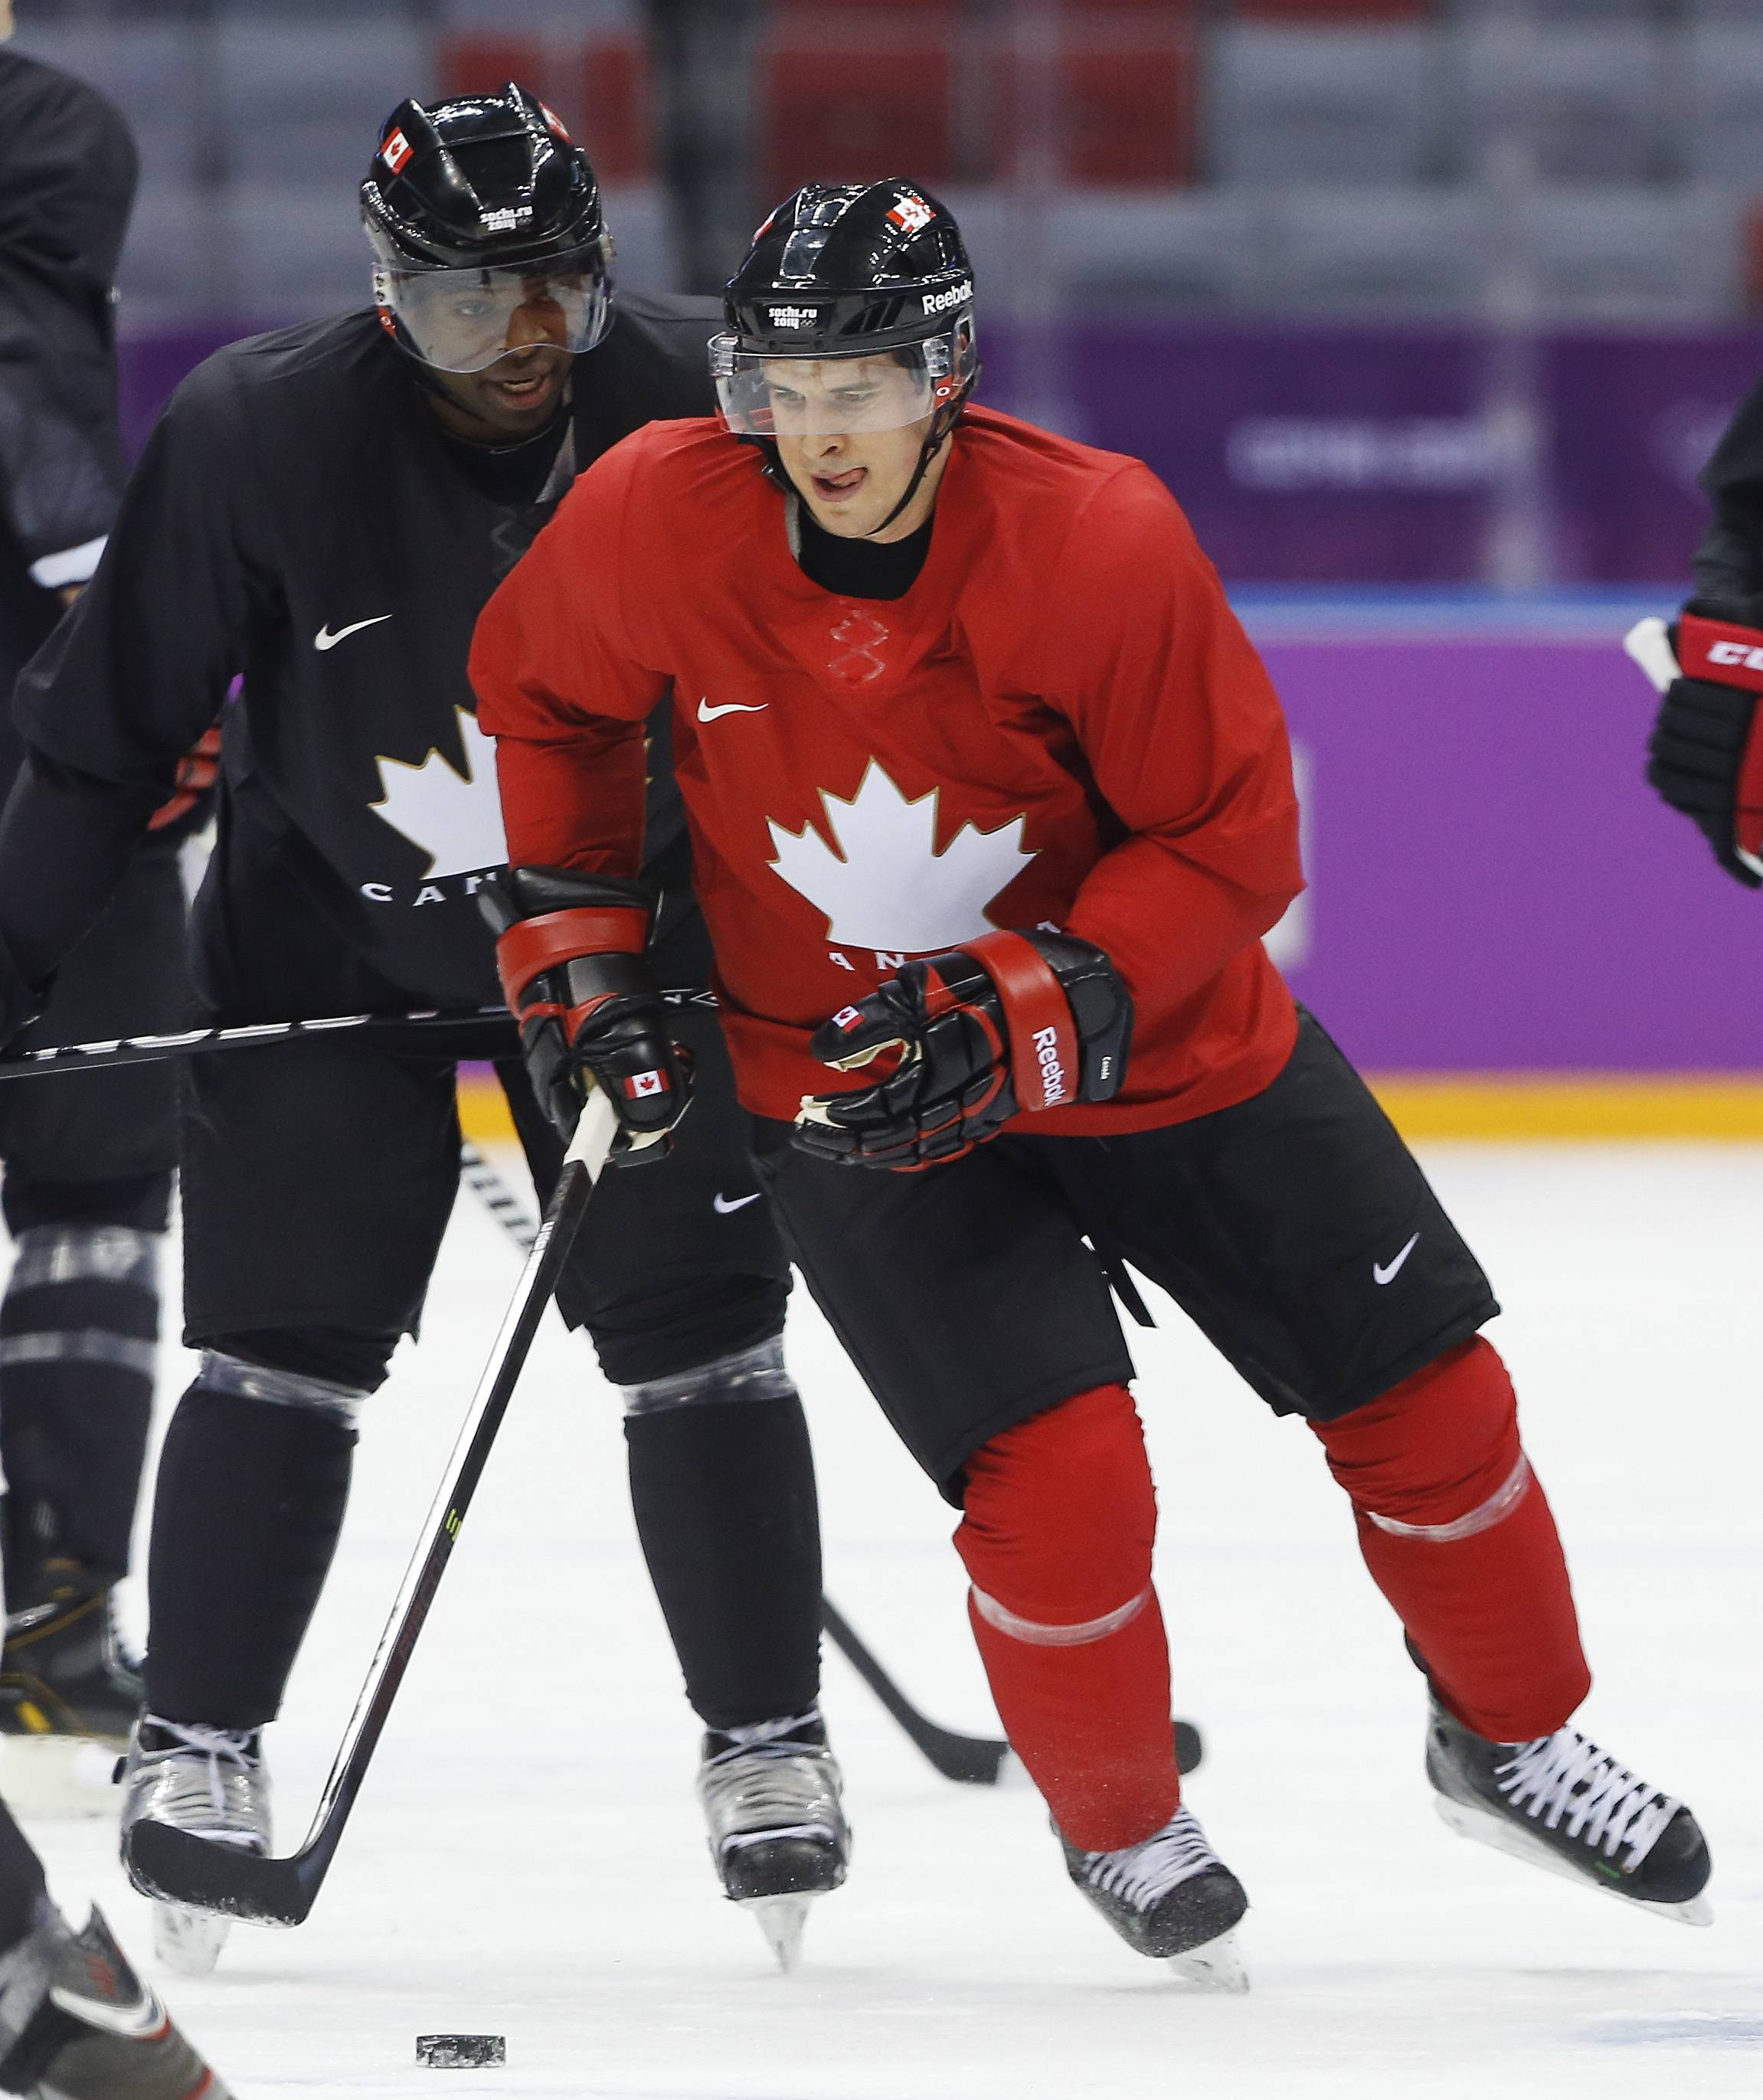 It was the overtime goal in the 2010 Games in Vancouver by Canada's Sidney Crosby, here running through a drill during a training session this week in Sochi, that the U.S. team is out to avenge this time around.